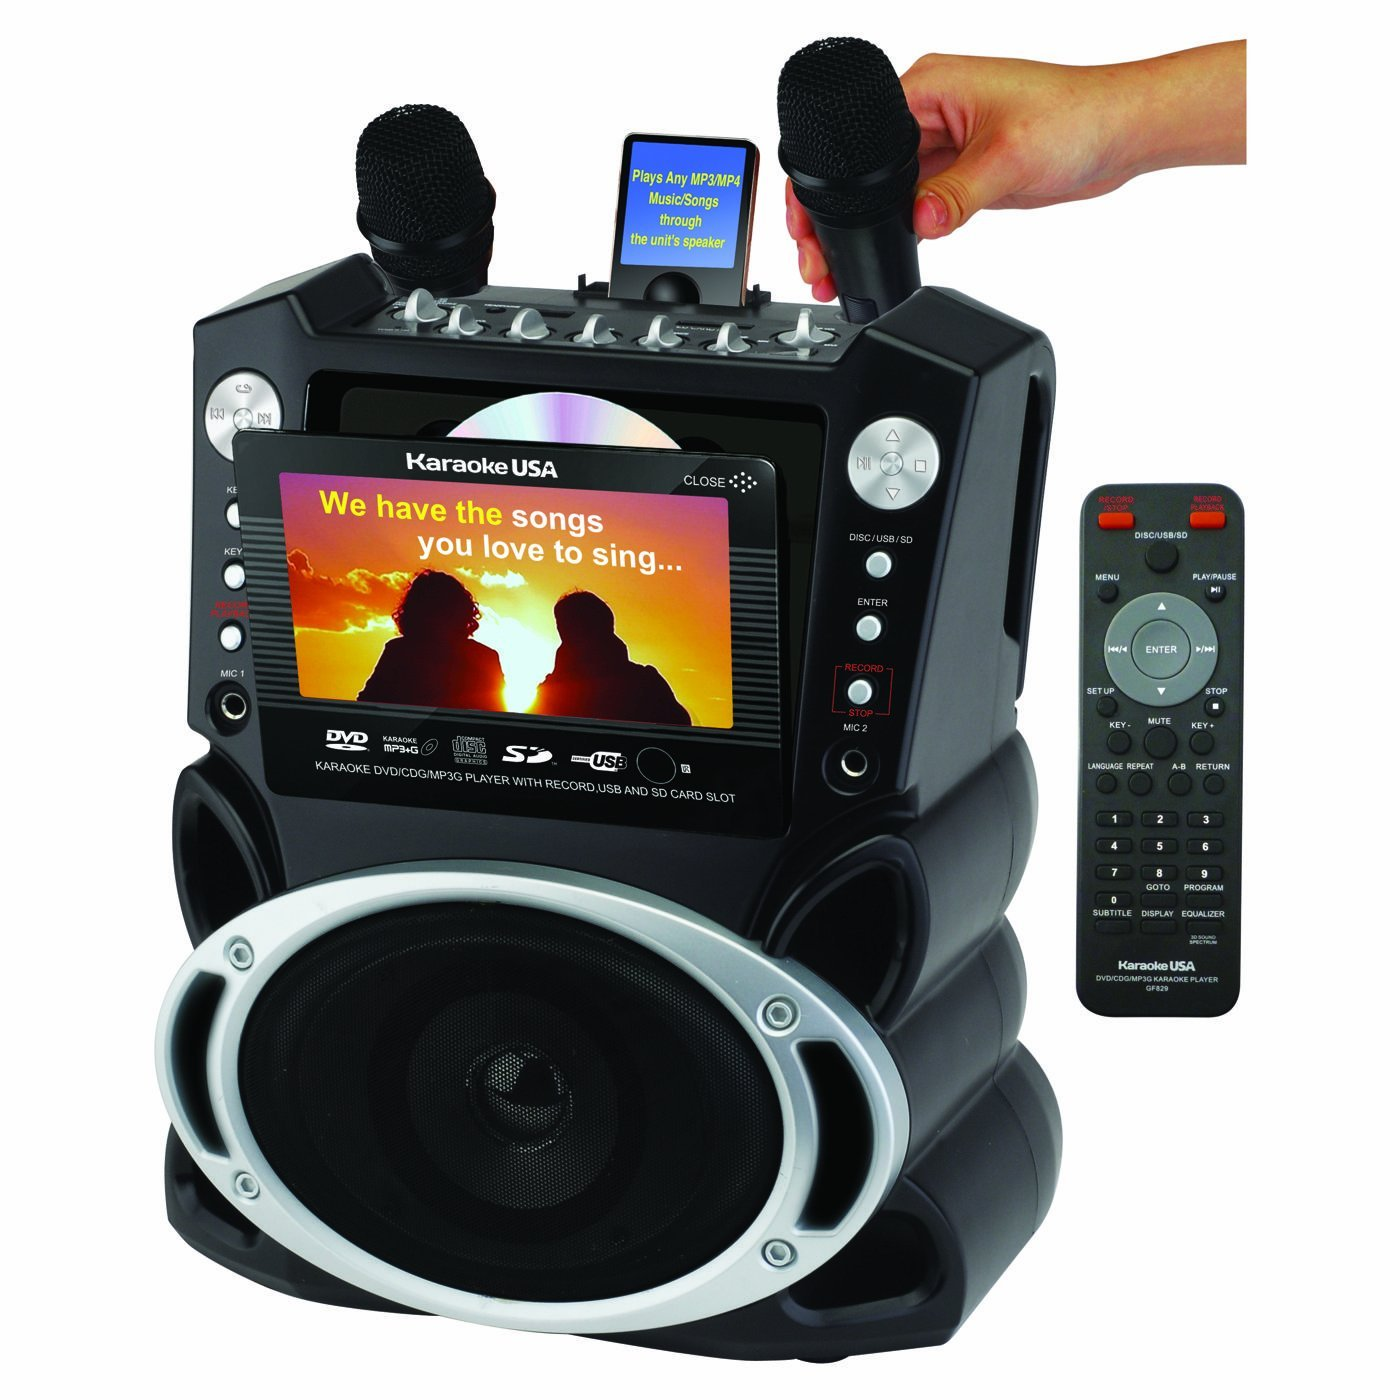 Image result for 2. Portable karaoke machines